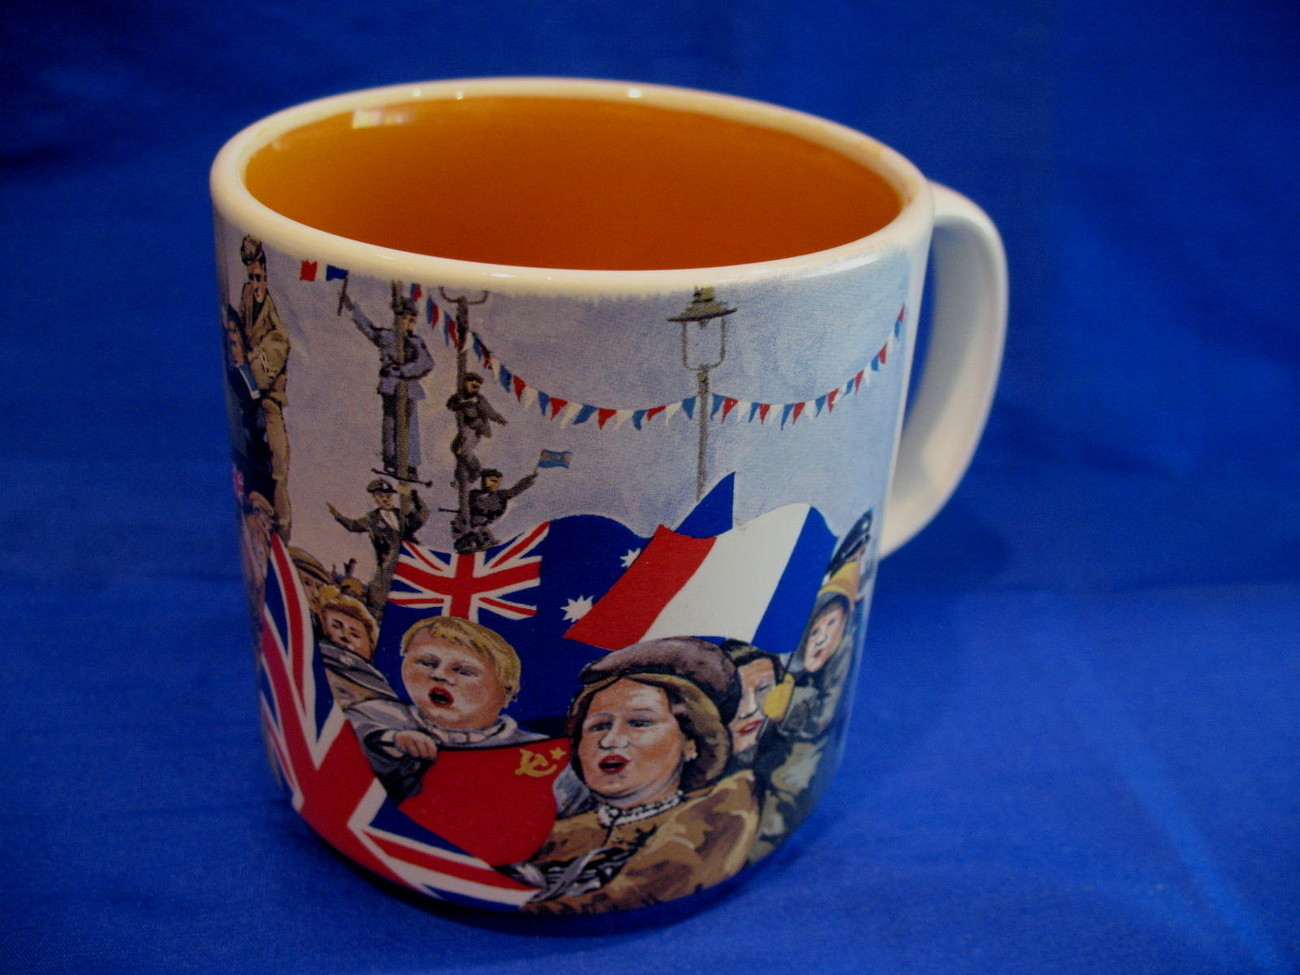 V. E. Day Victory in Europe Coffee Mug Tea Cup Souvenir 50 Anniversary